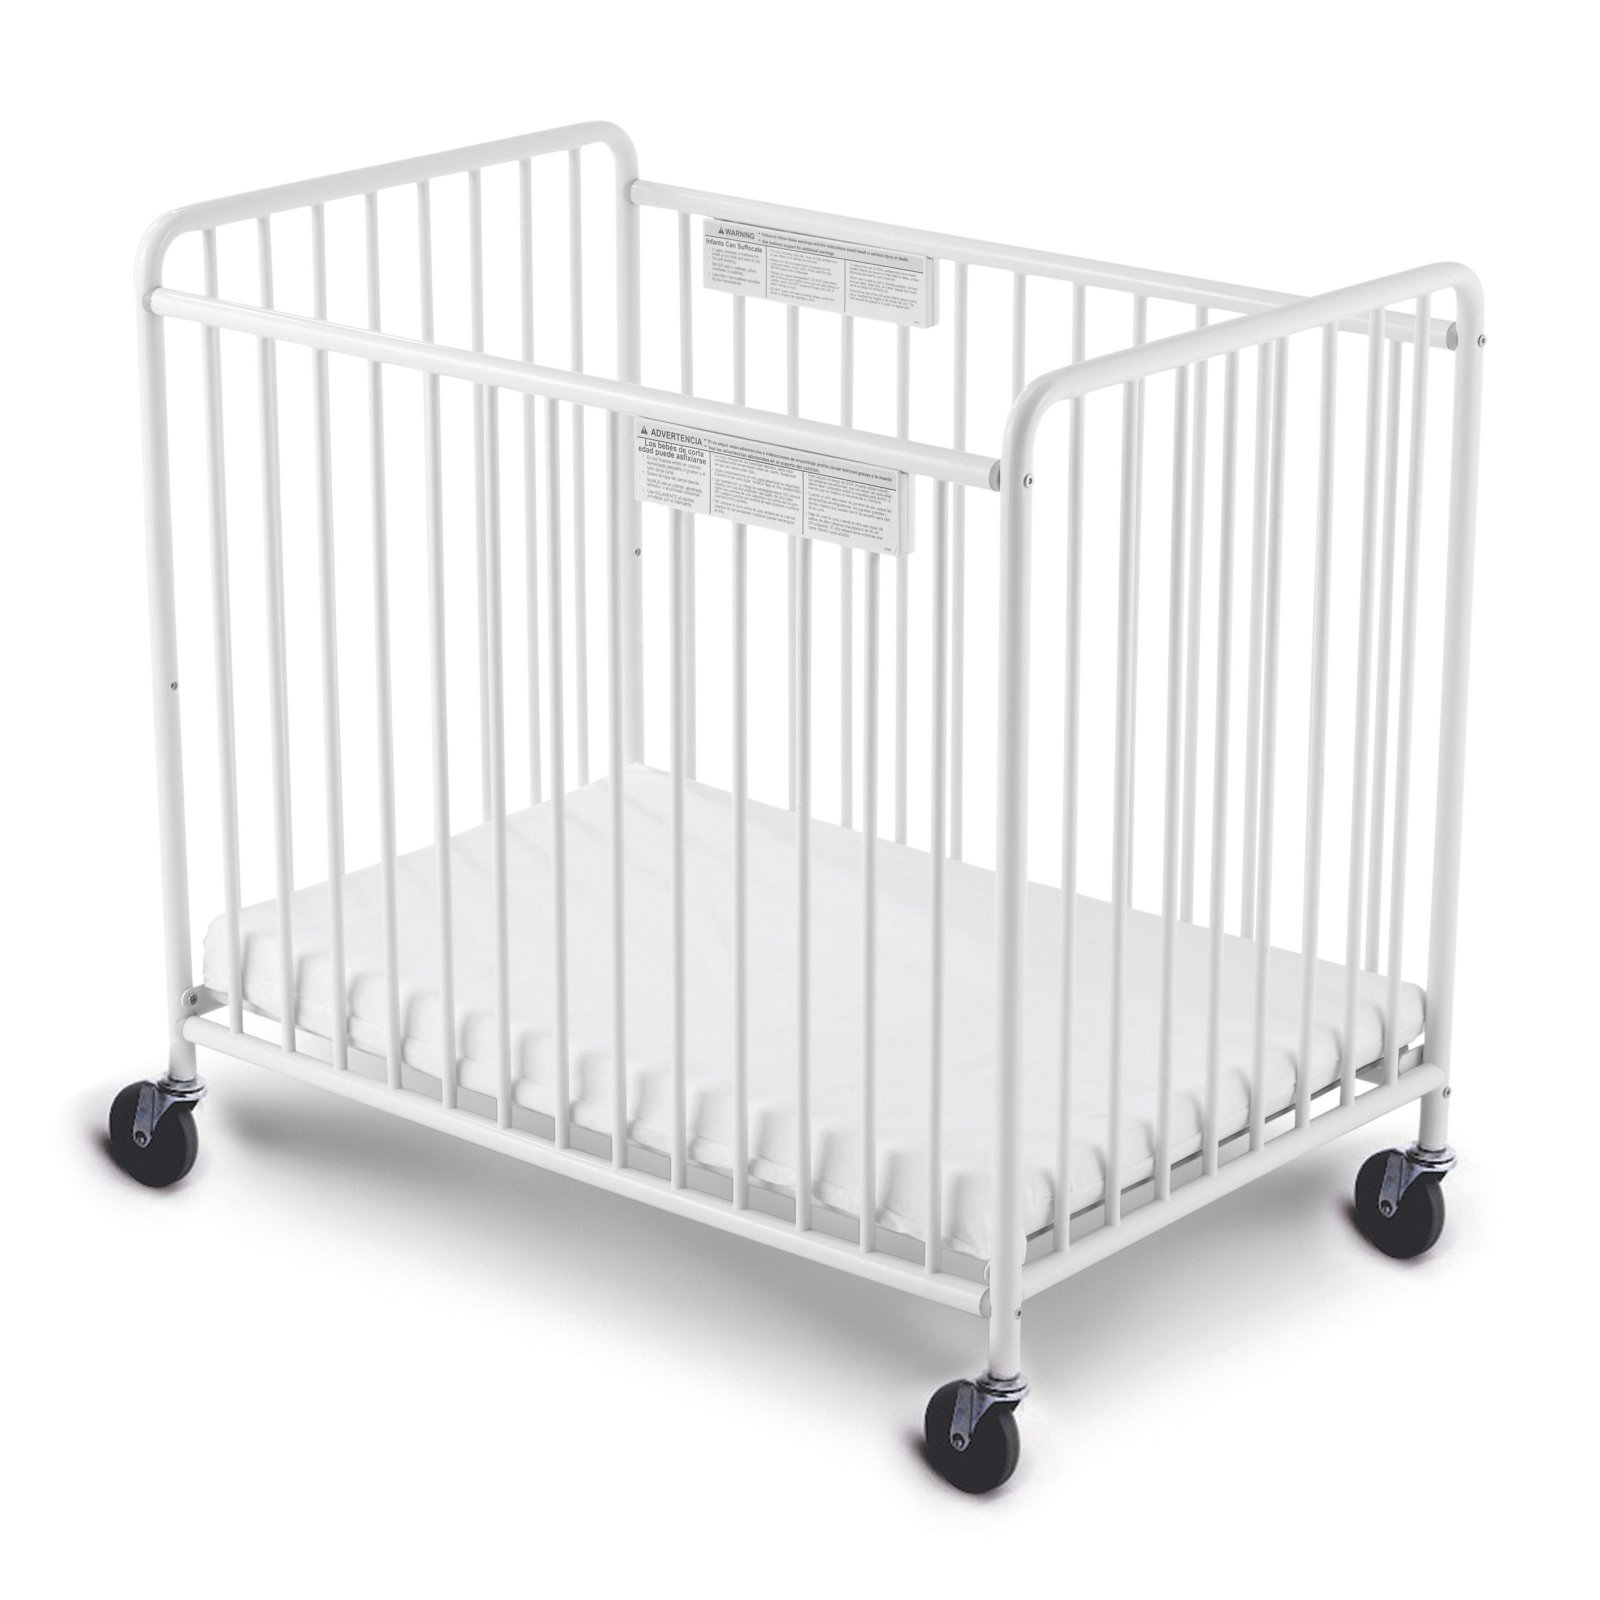 Foundations Compact Little Dreamer EasyRoll Crib